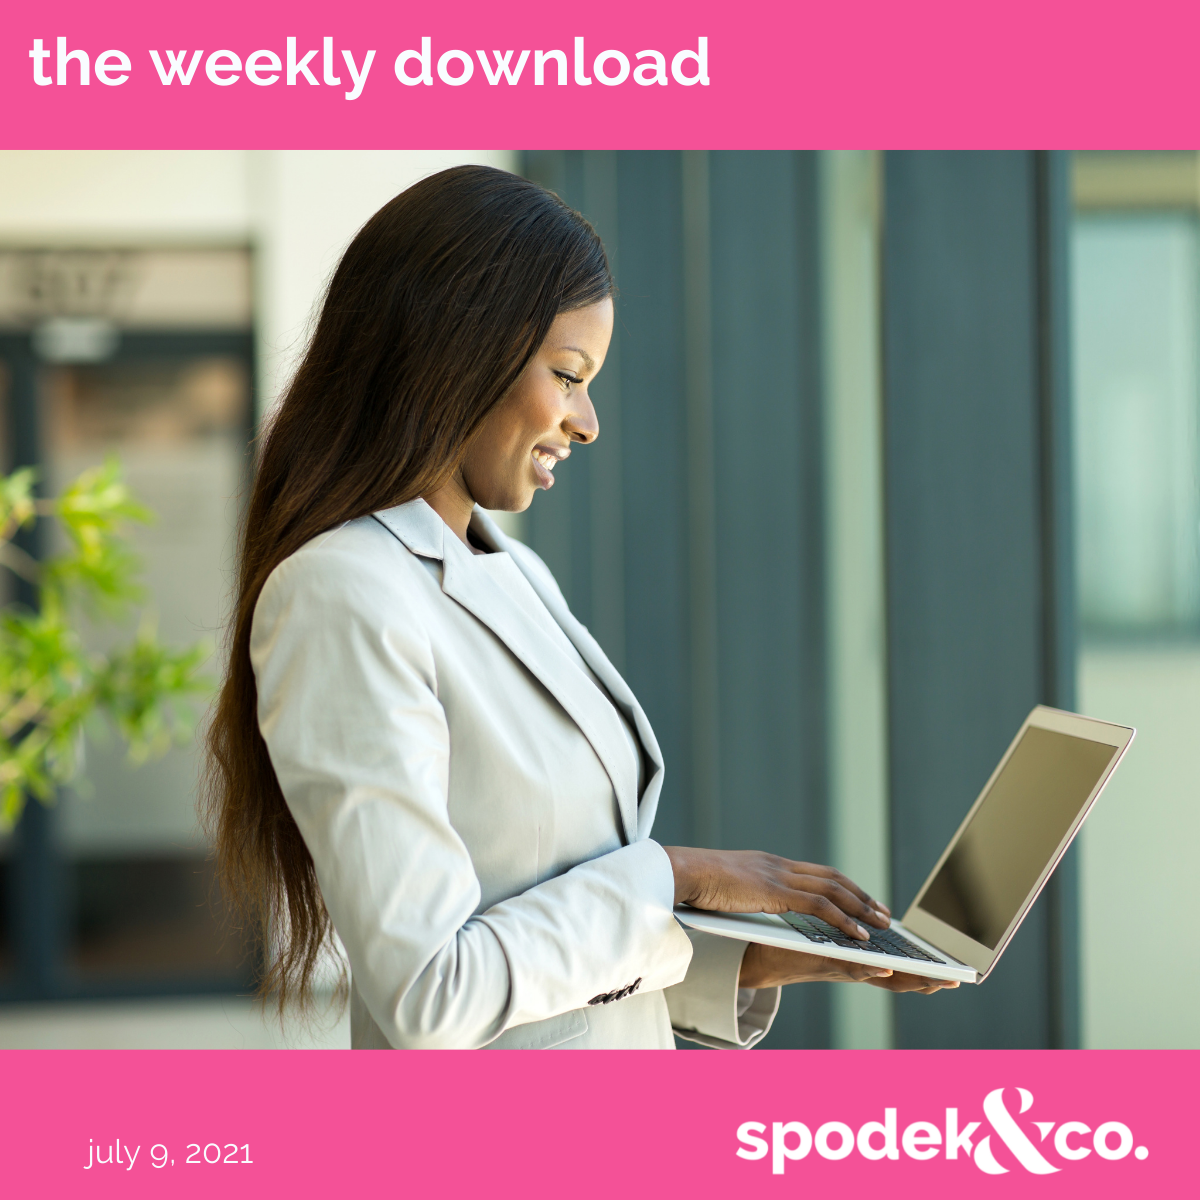 The Weekly Download – July 9, 2021